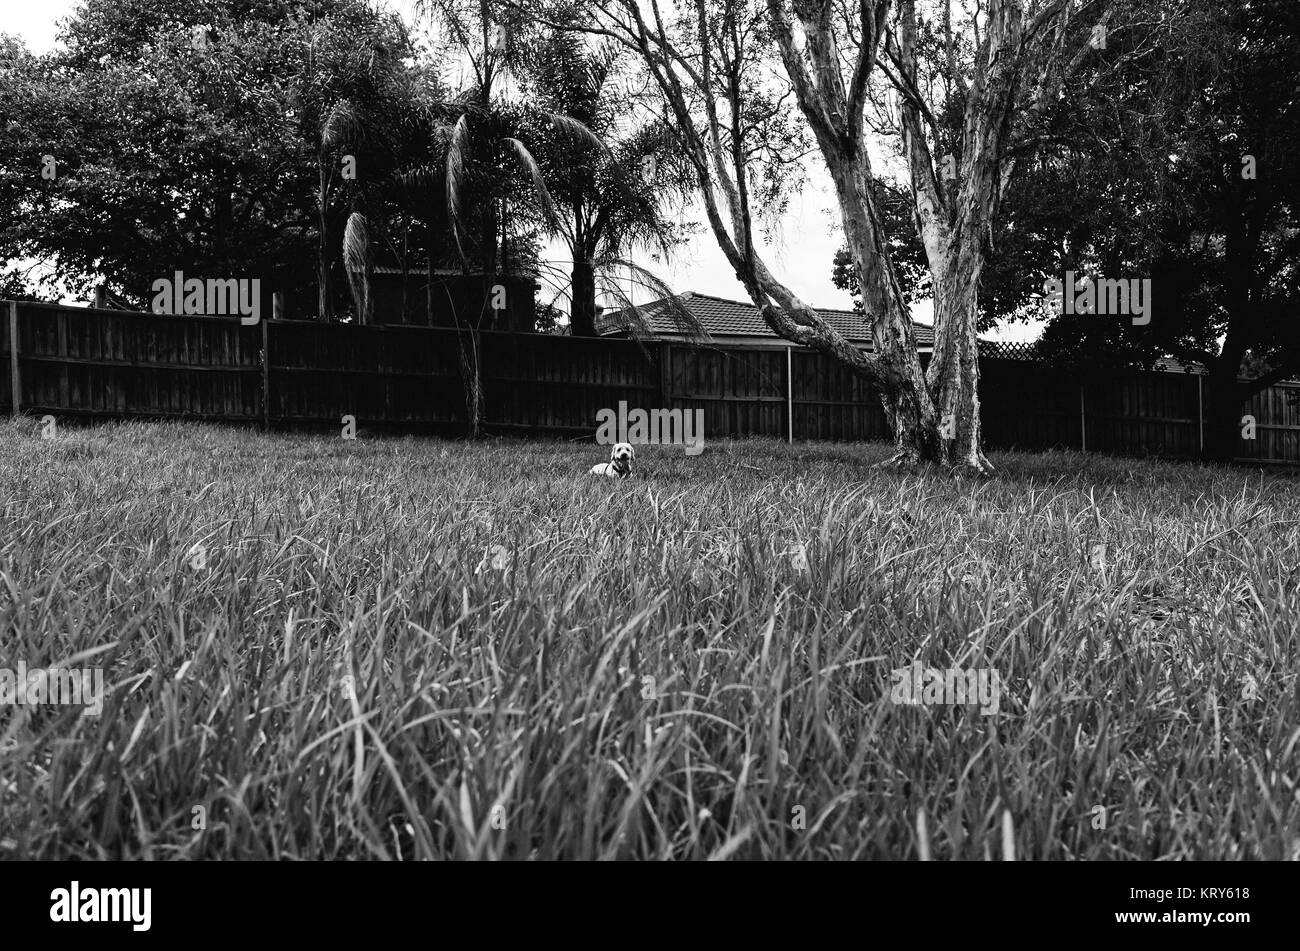 A black and white photo of a happy dog in a big field of grass in a suburban park. - Stock Image